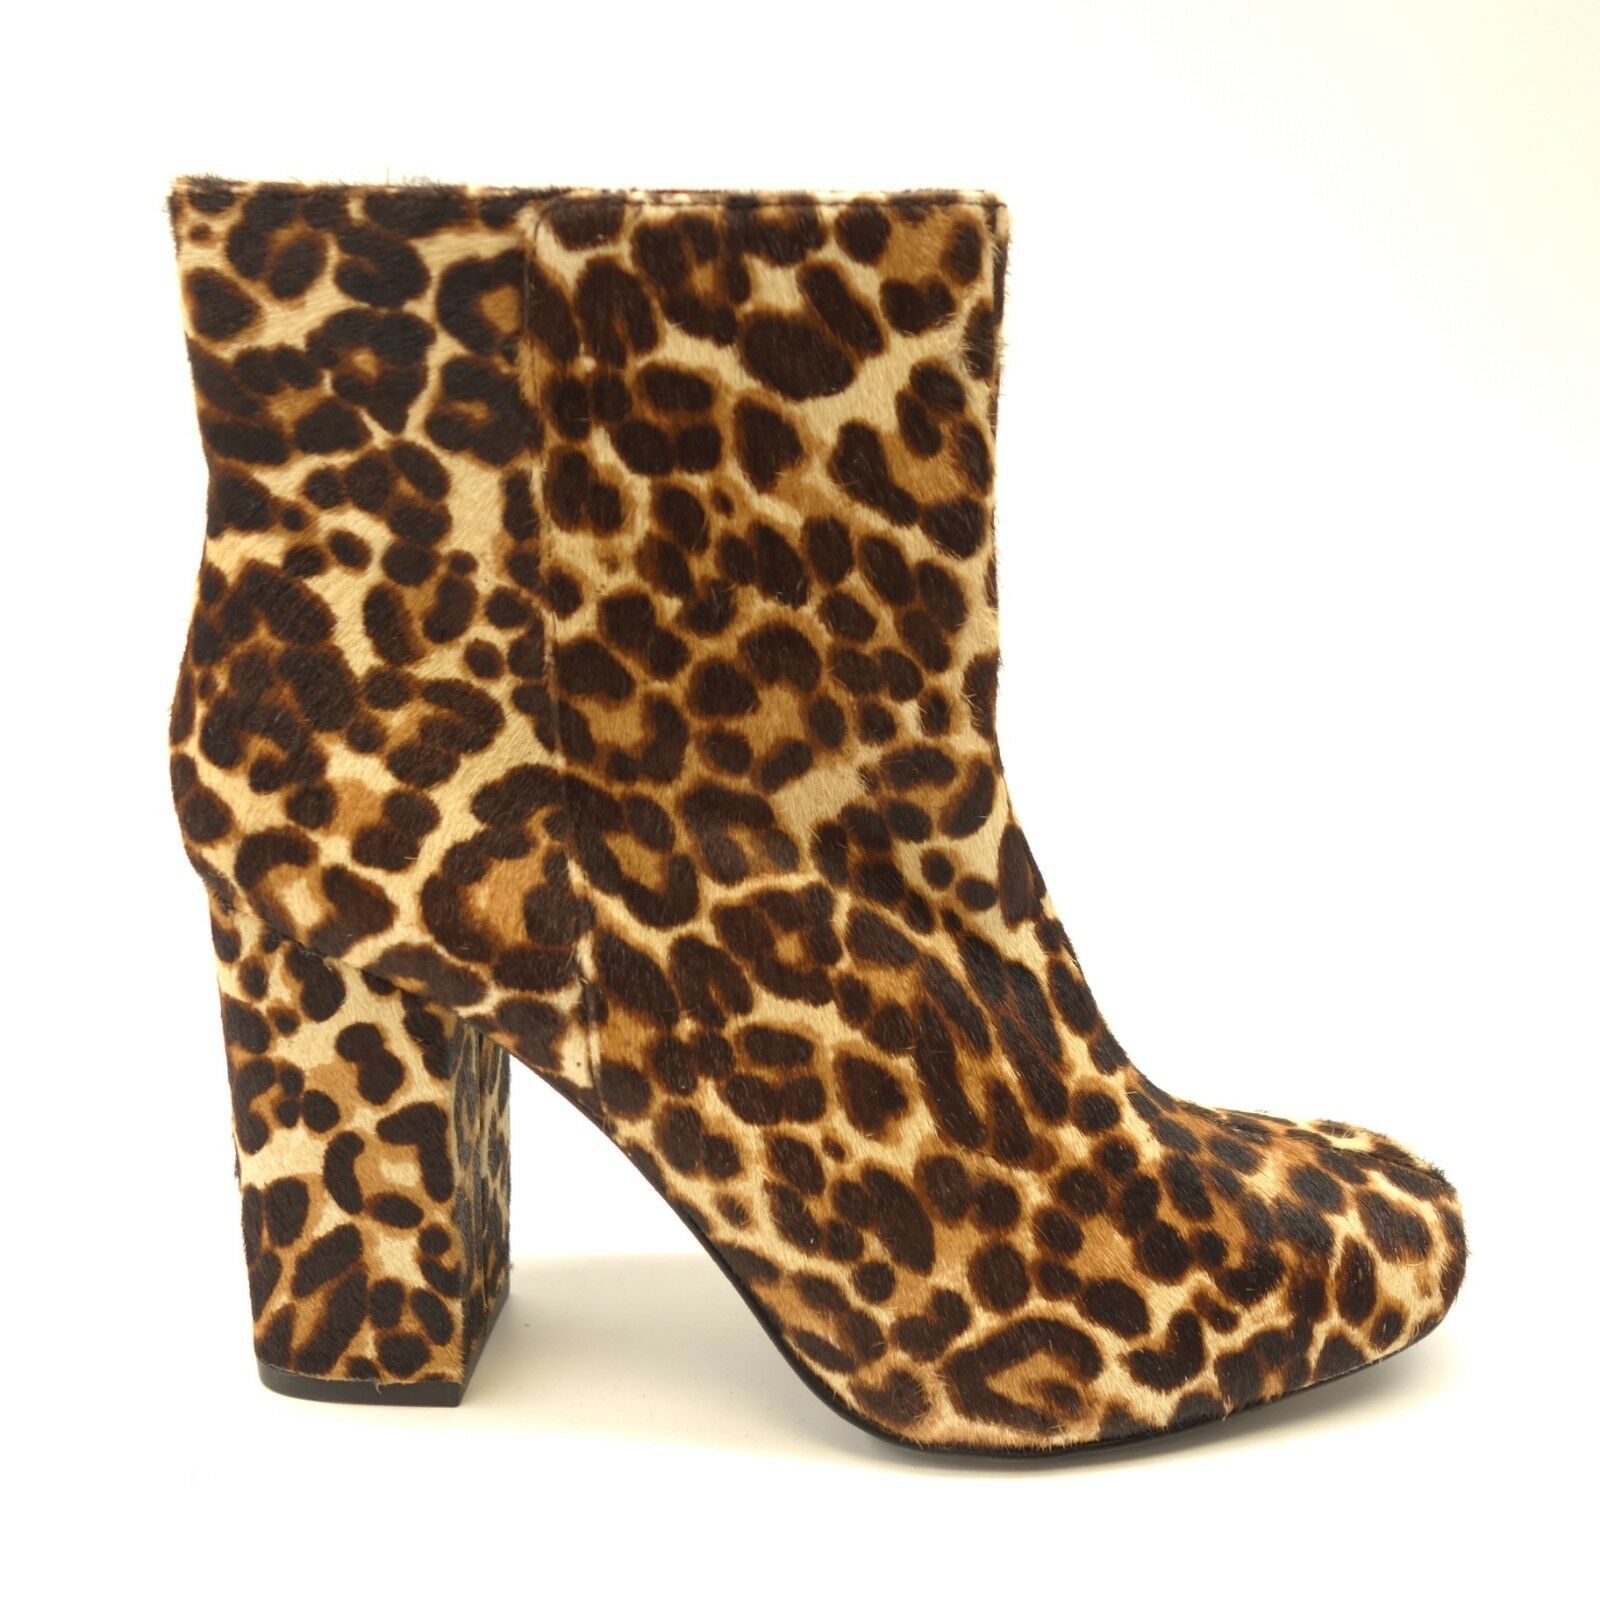 New Charles David Womens Studio Ankle Boot Leopard Leather Booties US 12